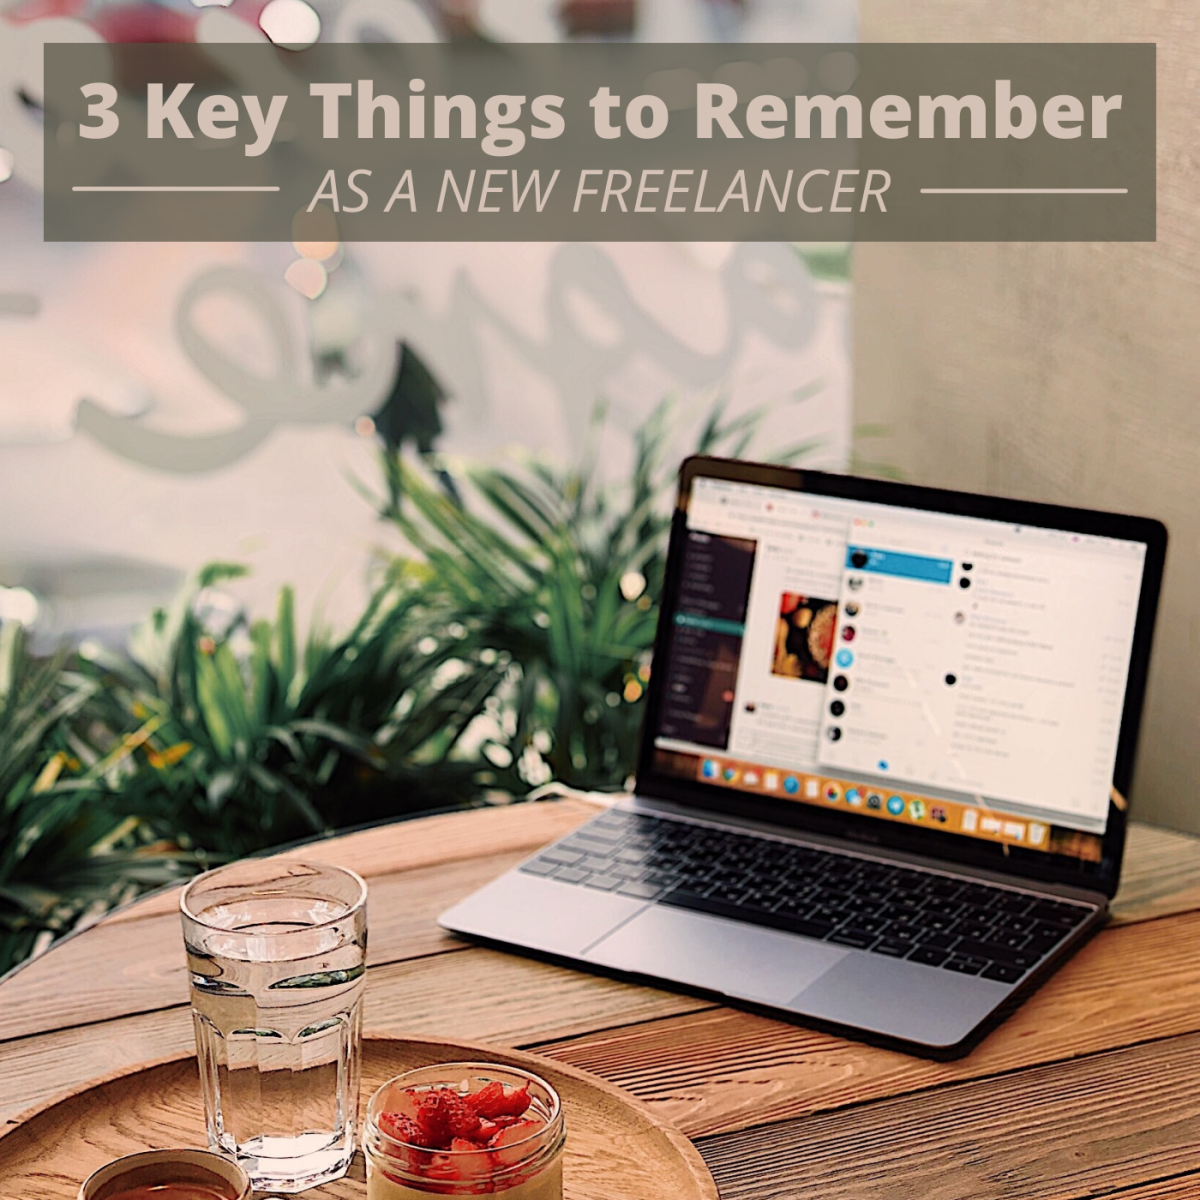 Here are three things I wish someone told me when I first started out as a freelance writer.